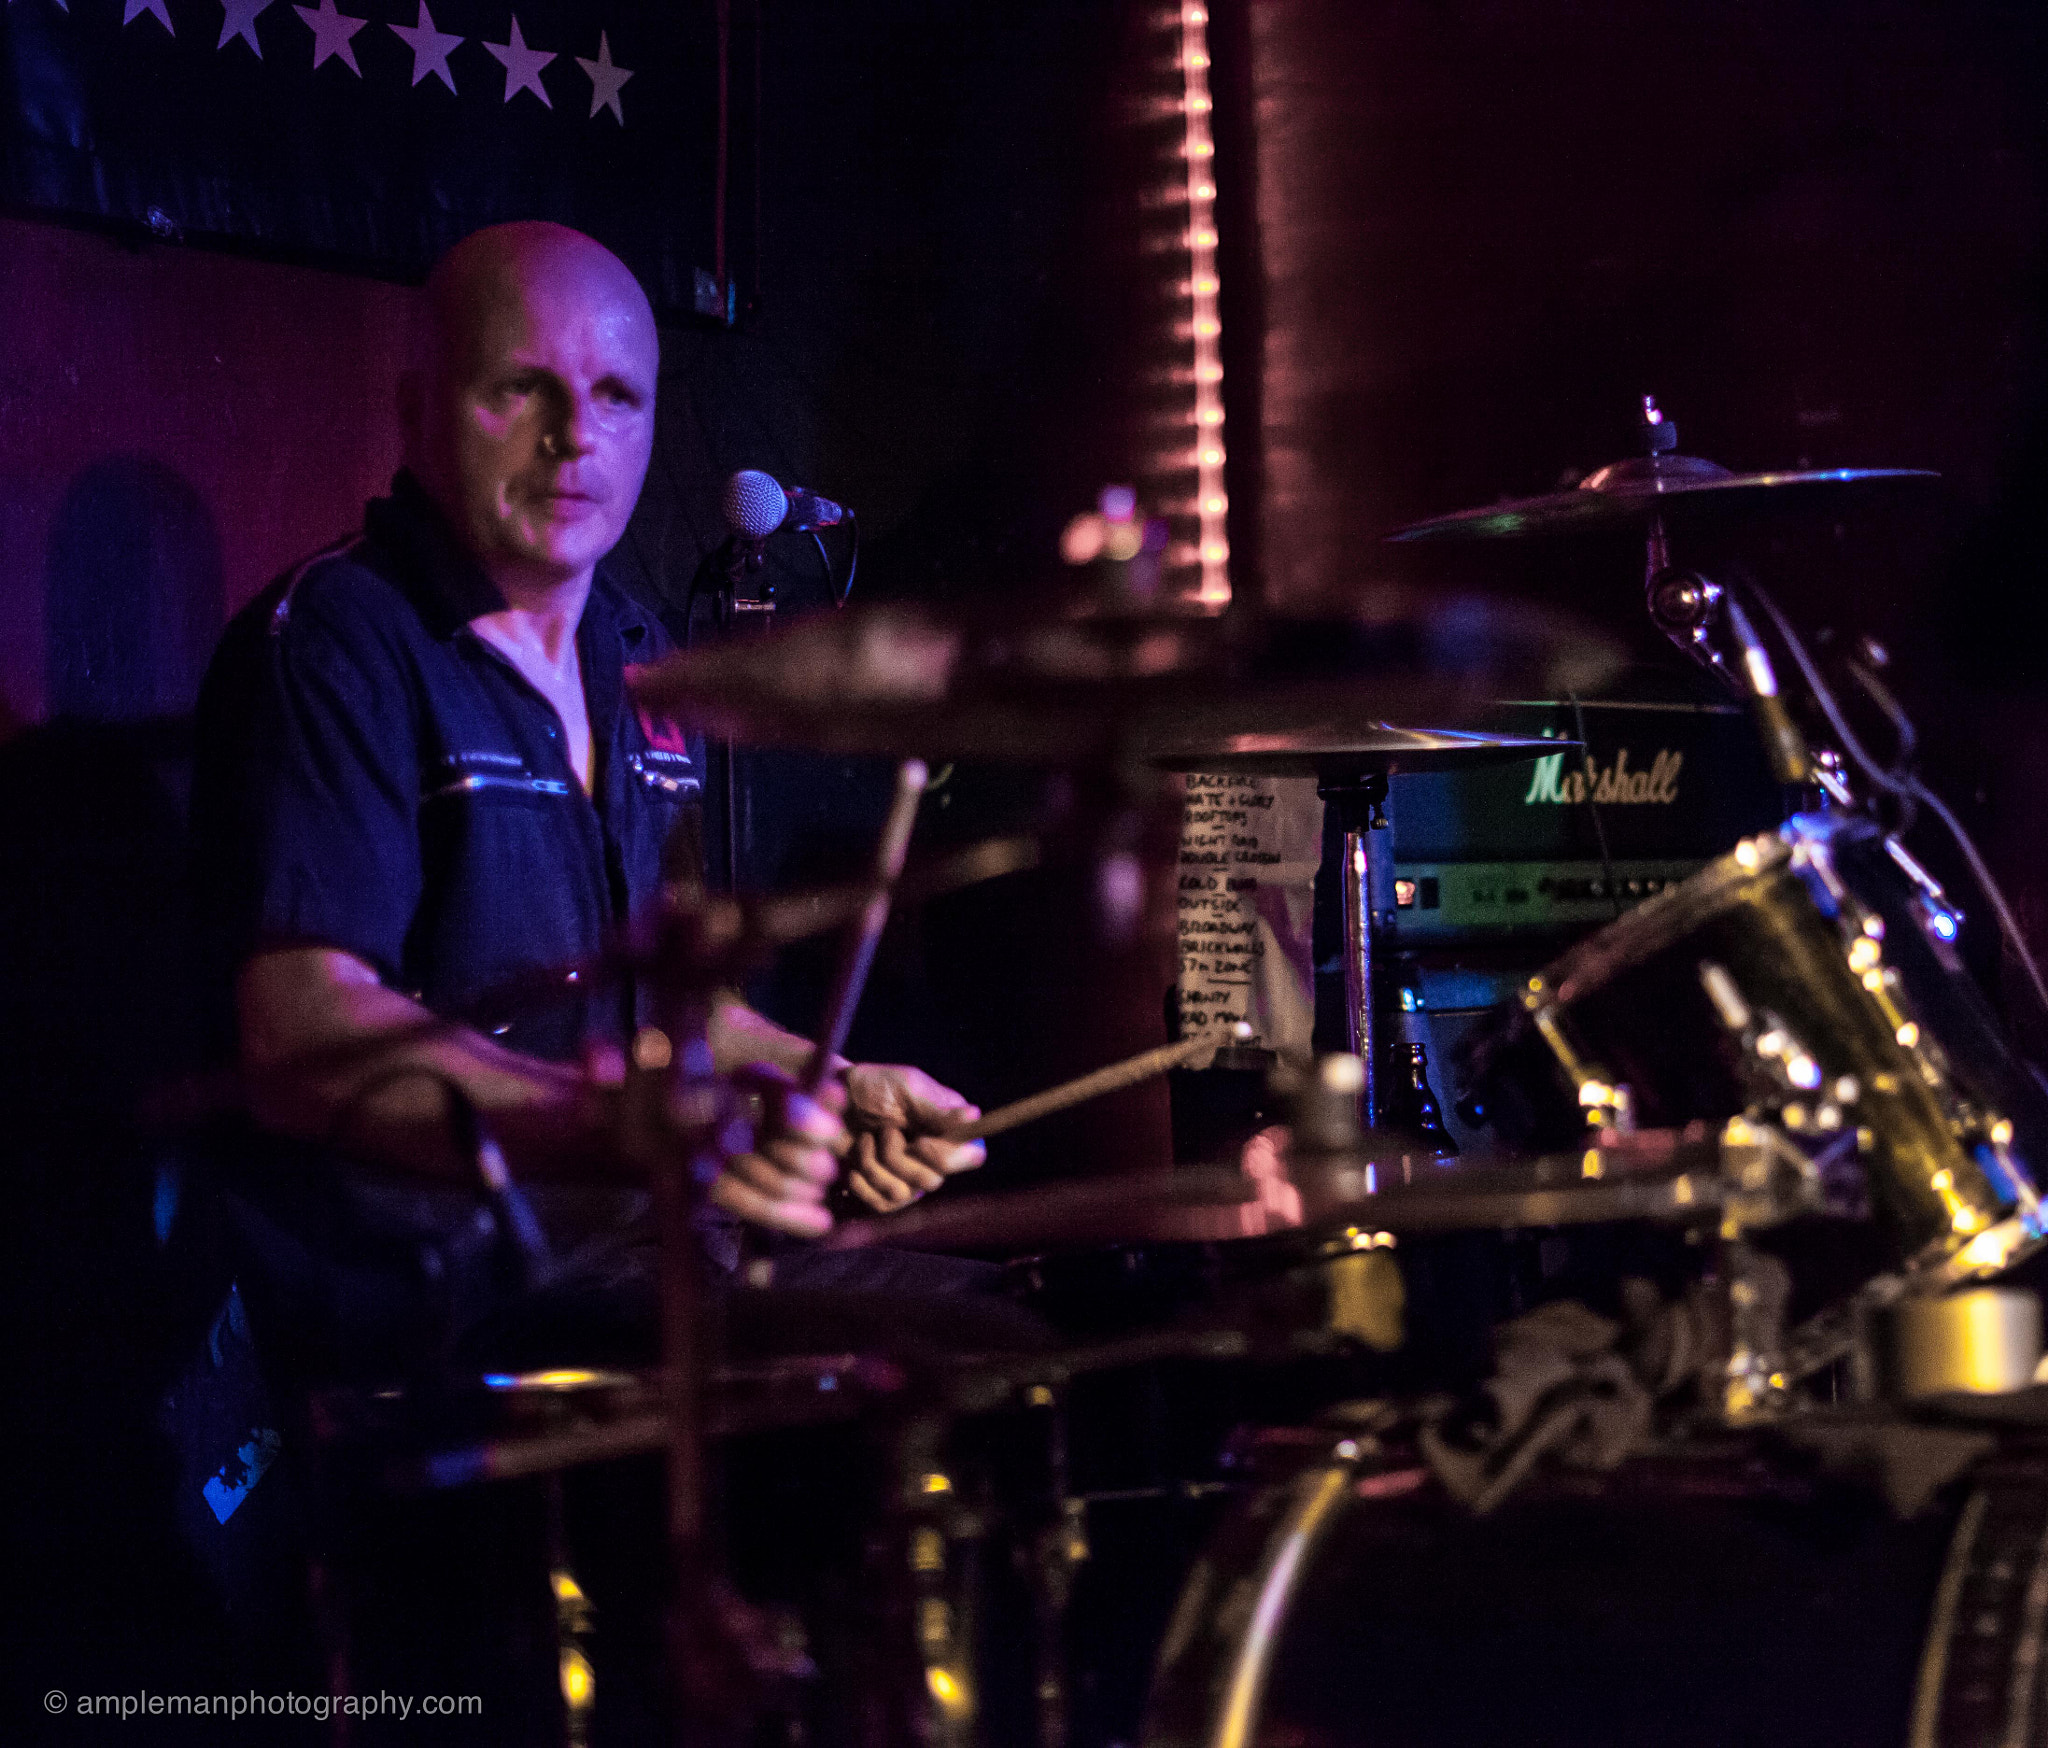 Photograph Hi-Fi Spitfires - Punk Rockers, Live at Wild at Heart, Berlin by Ampleman Photography on 500px